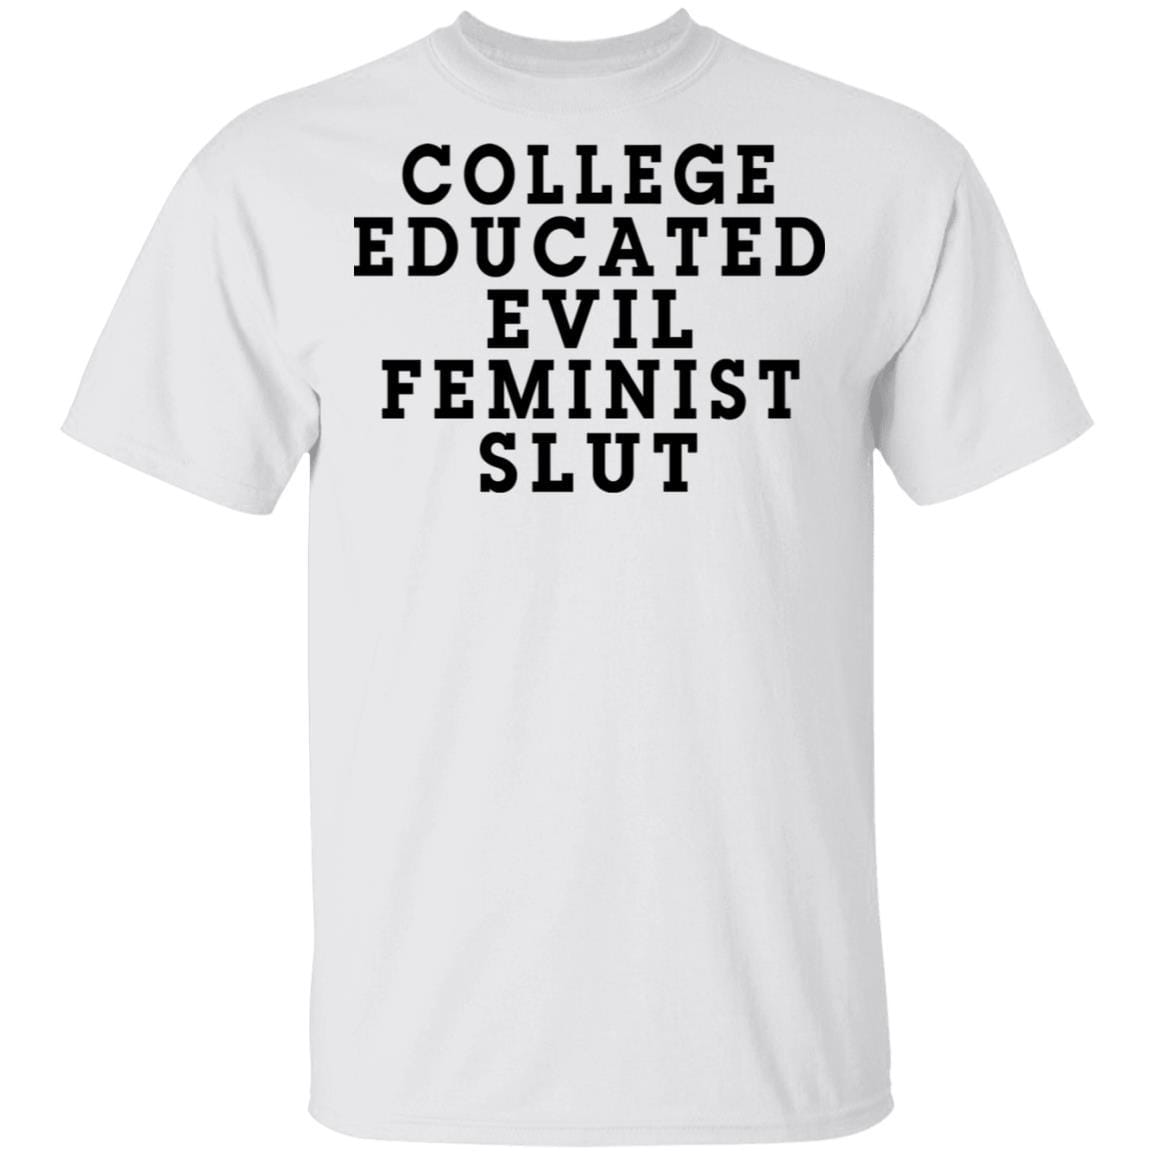 College Educated Evil Feminist Slut T-Shirts, Hoodies 1049-9974-87283702-48300 - Tee Ript